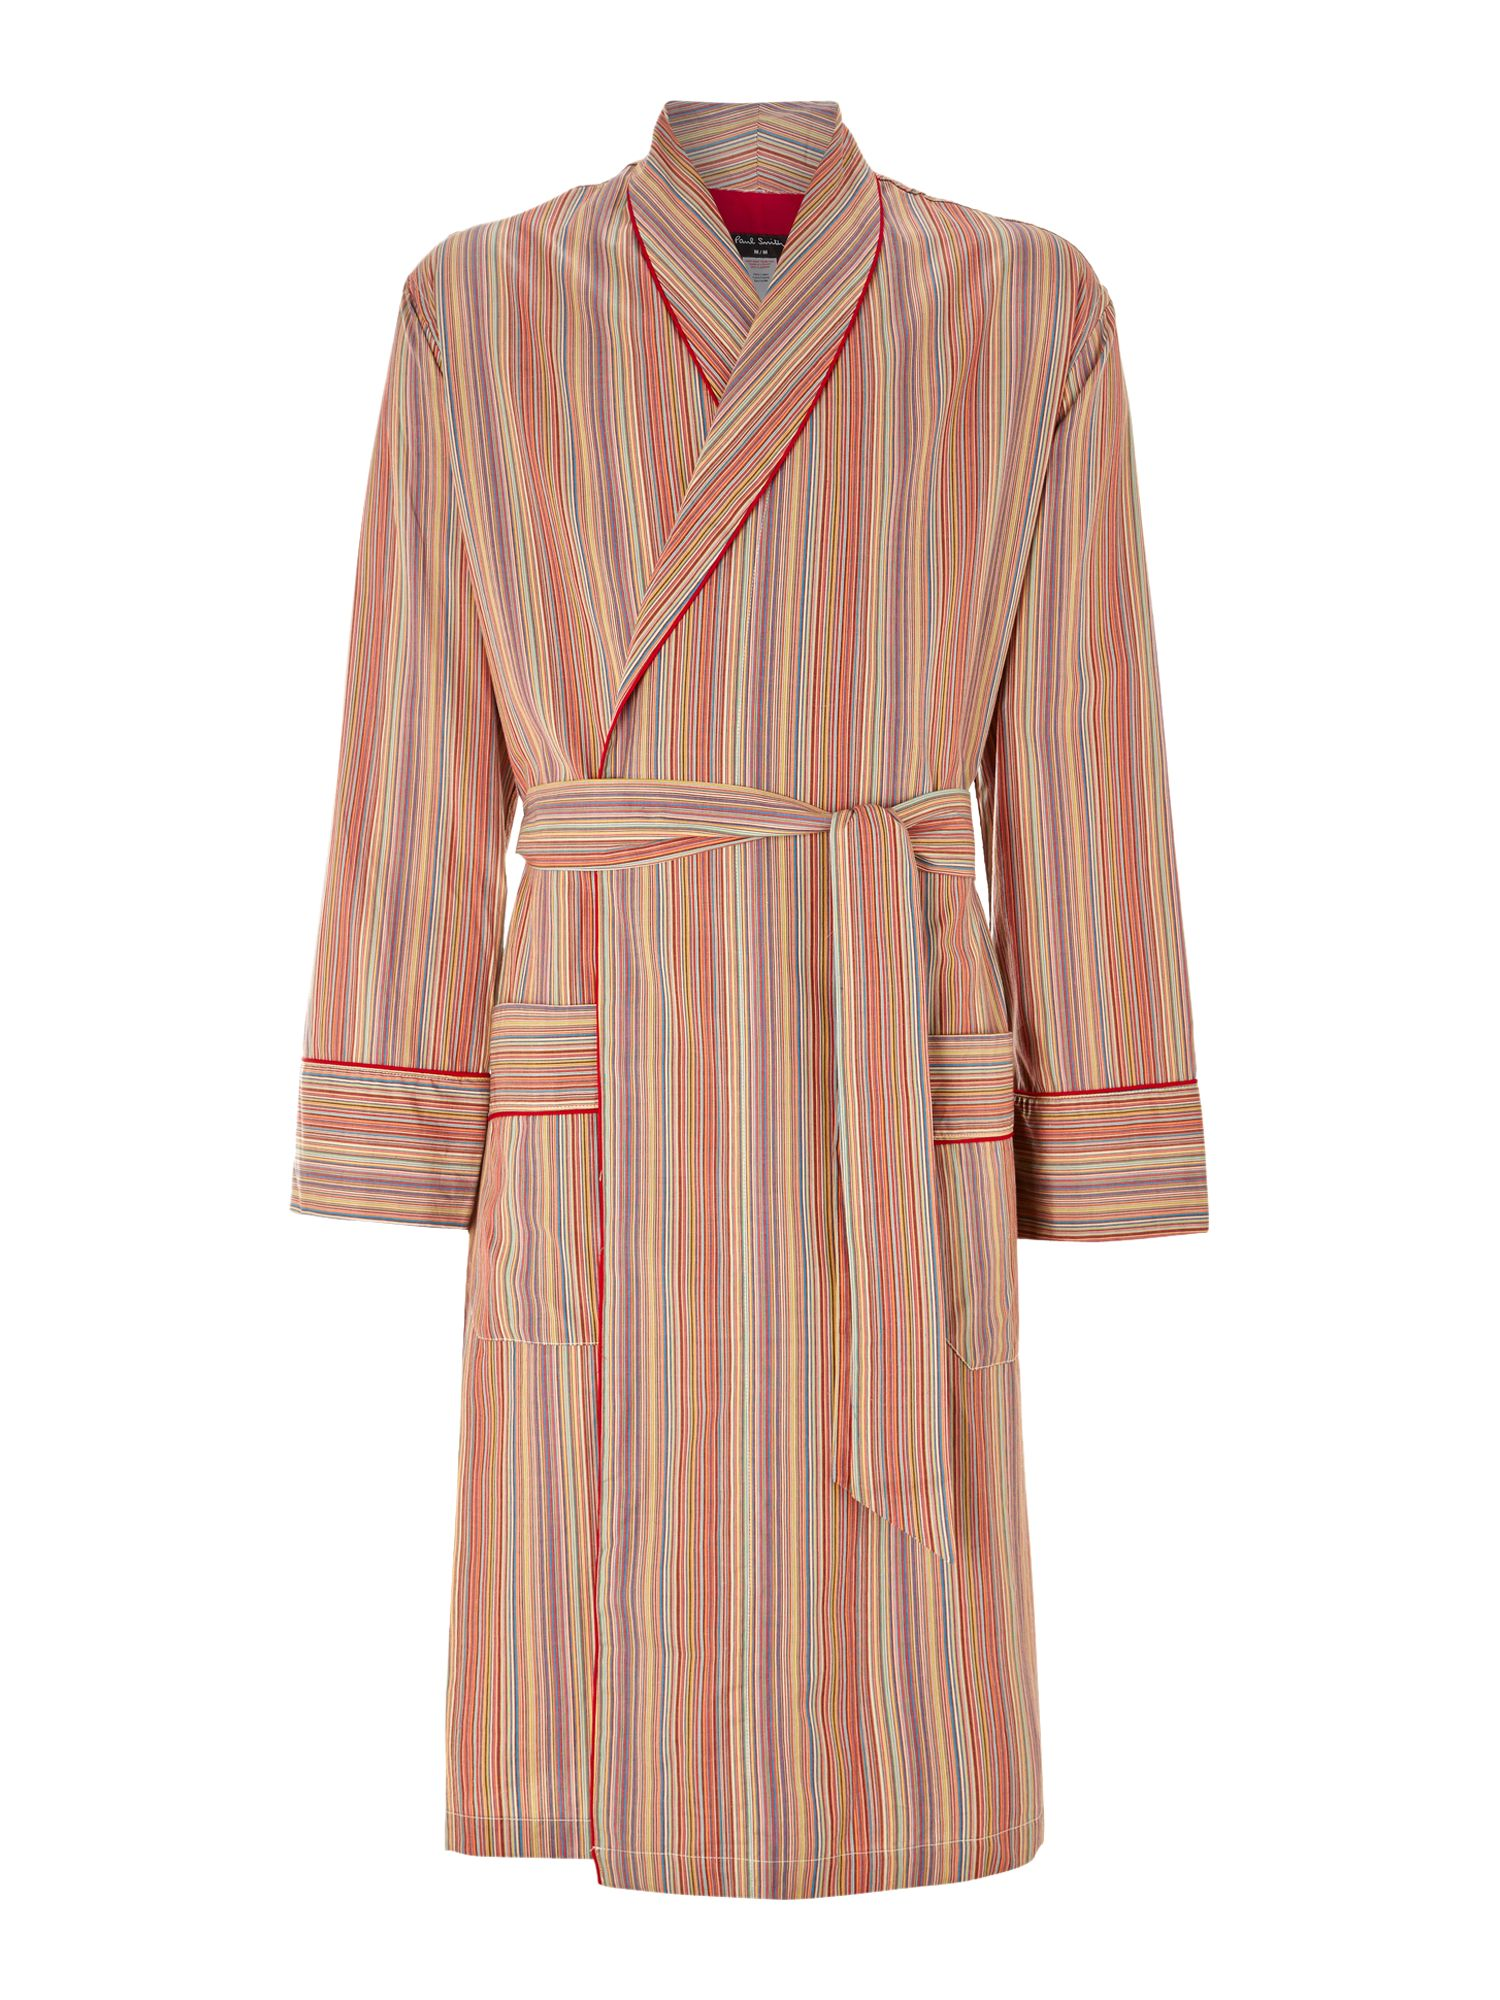 Multistripe robe